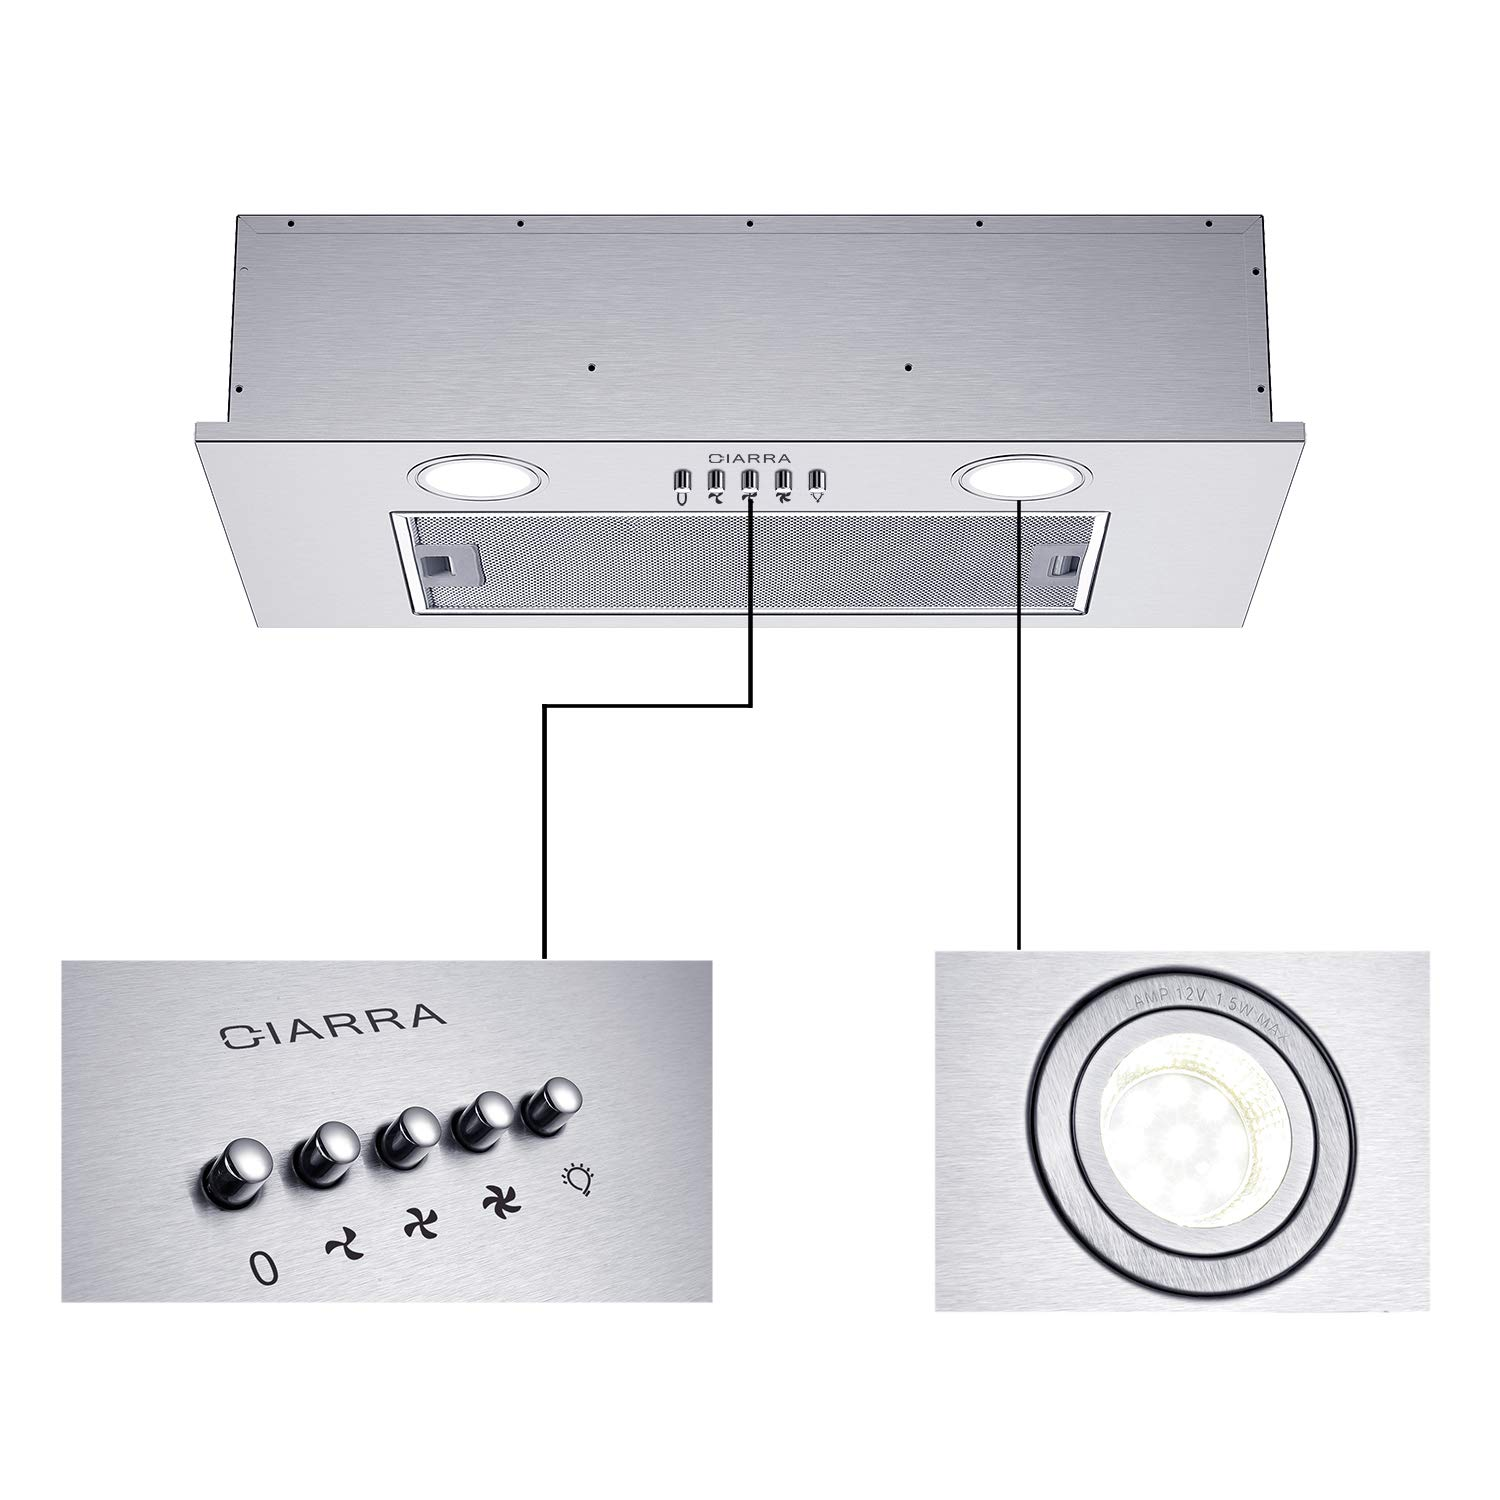 CIARRA CBCS5913A Integrated Cooker Hood 52cm Stainless Steel Range Hood LED Light 3 Speeds Undercabinet Extractor Fan